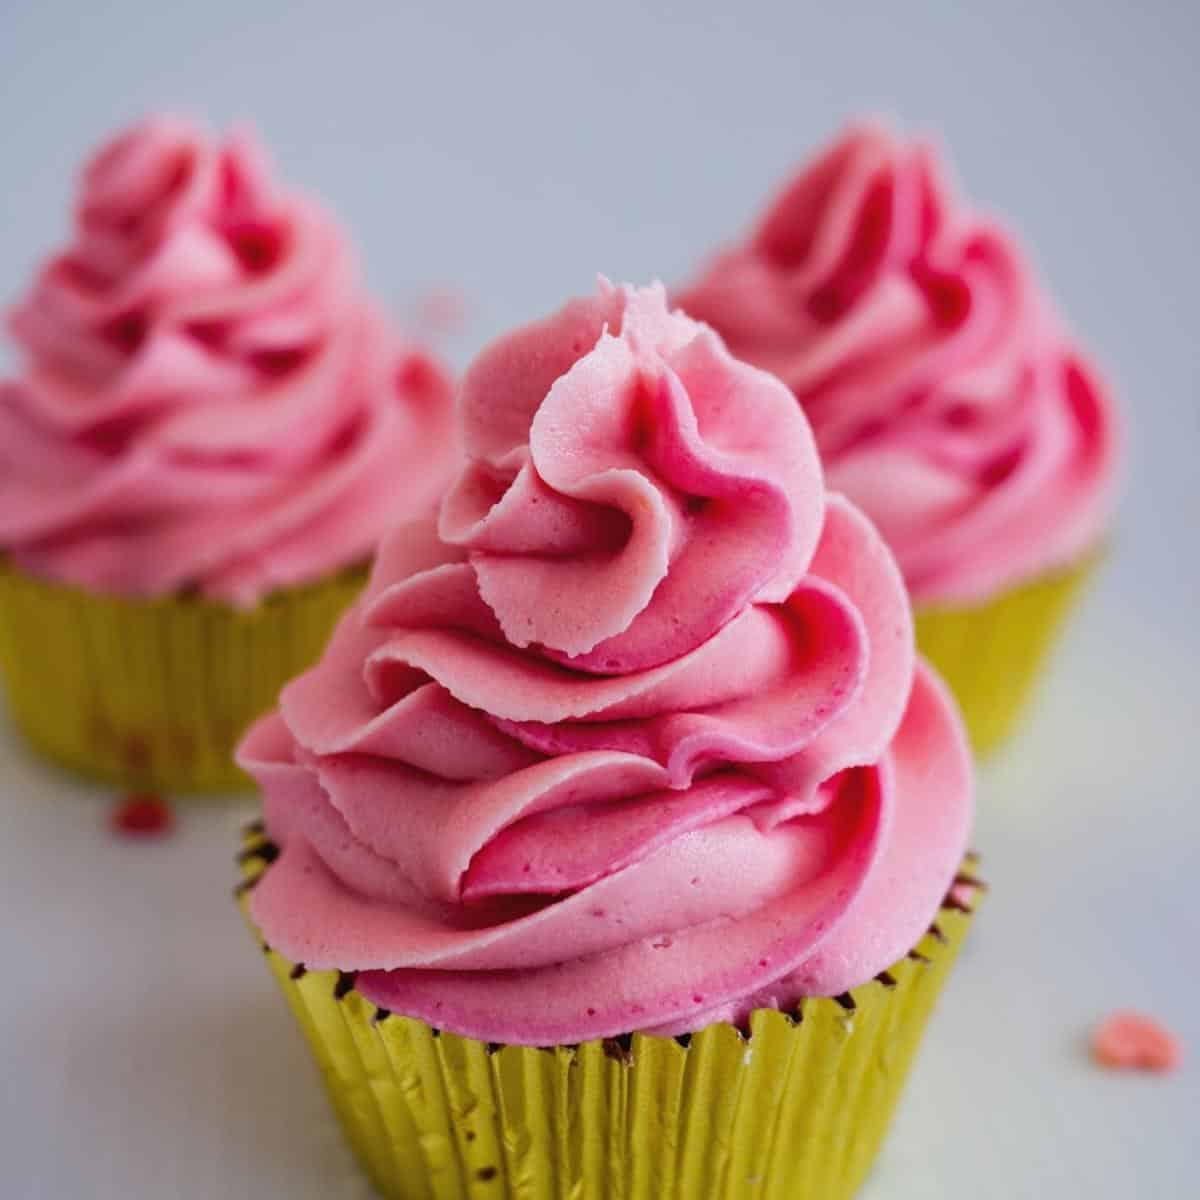 Three frosted cupcakes in pink champagne